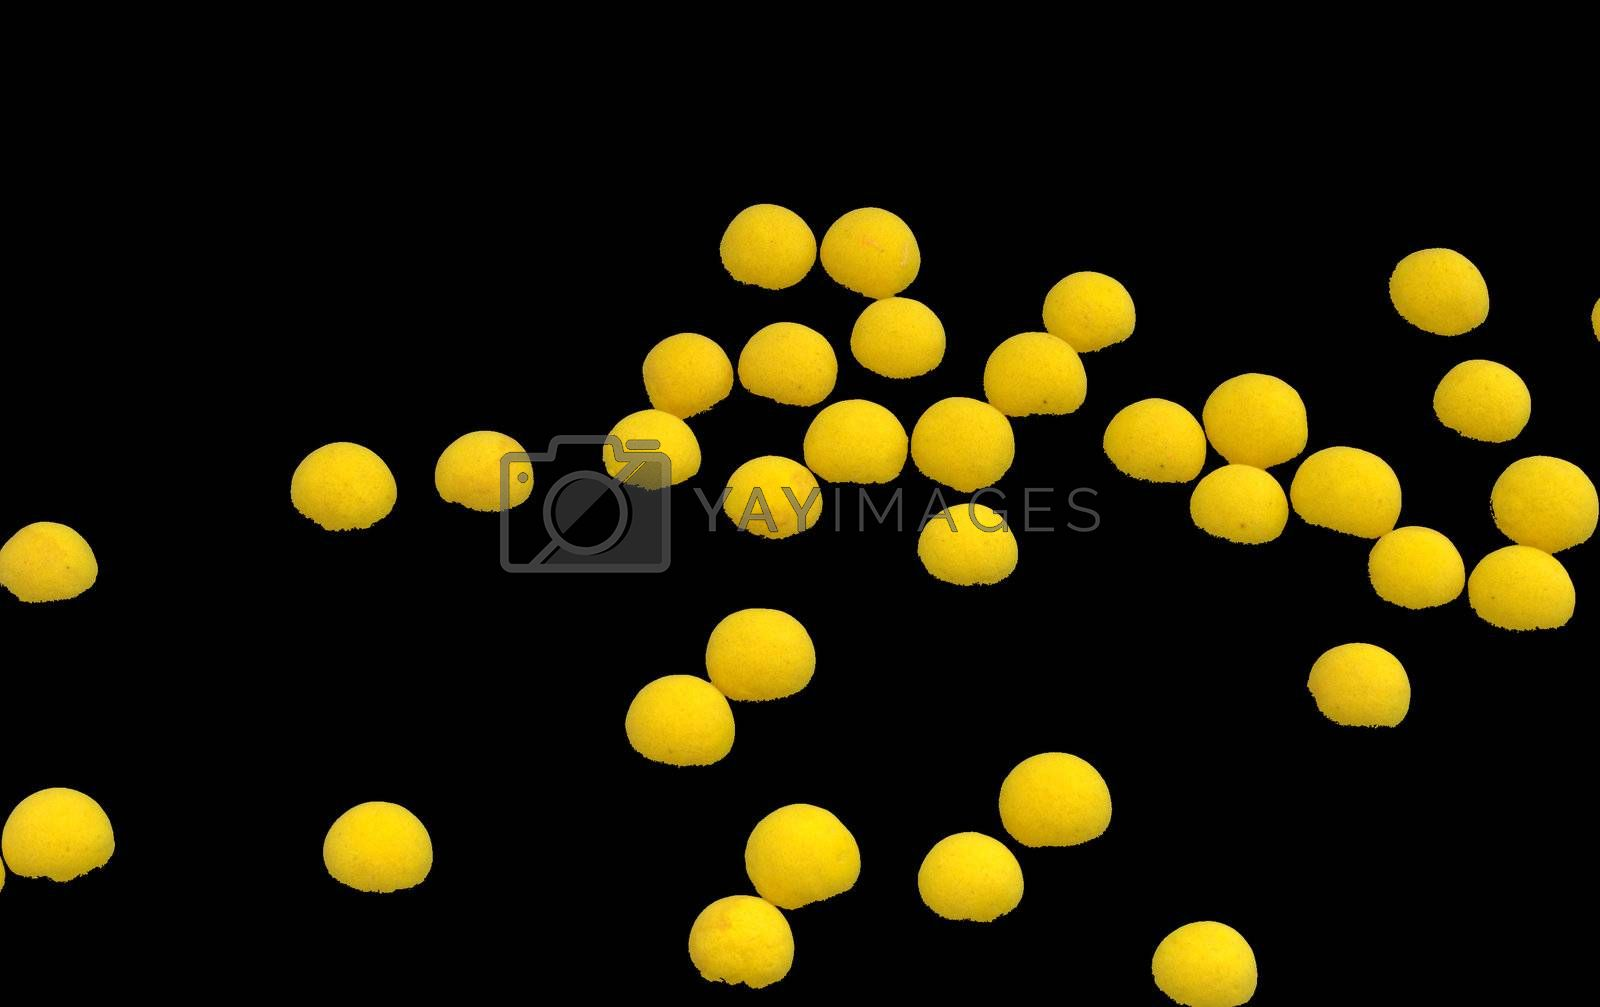 Group of bright yellow spheres on black background